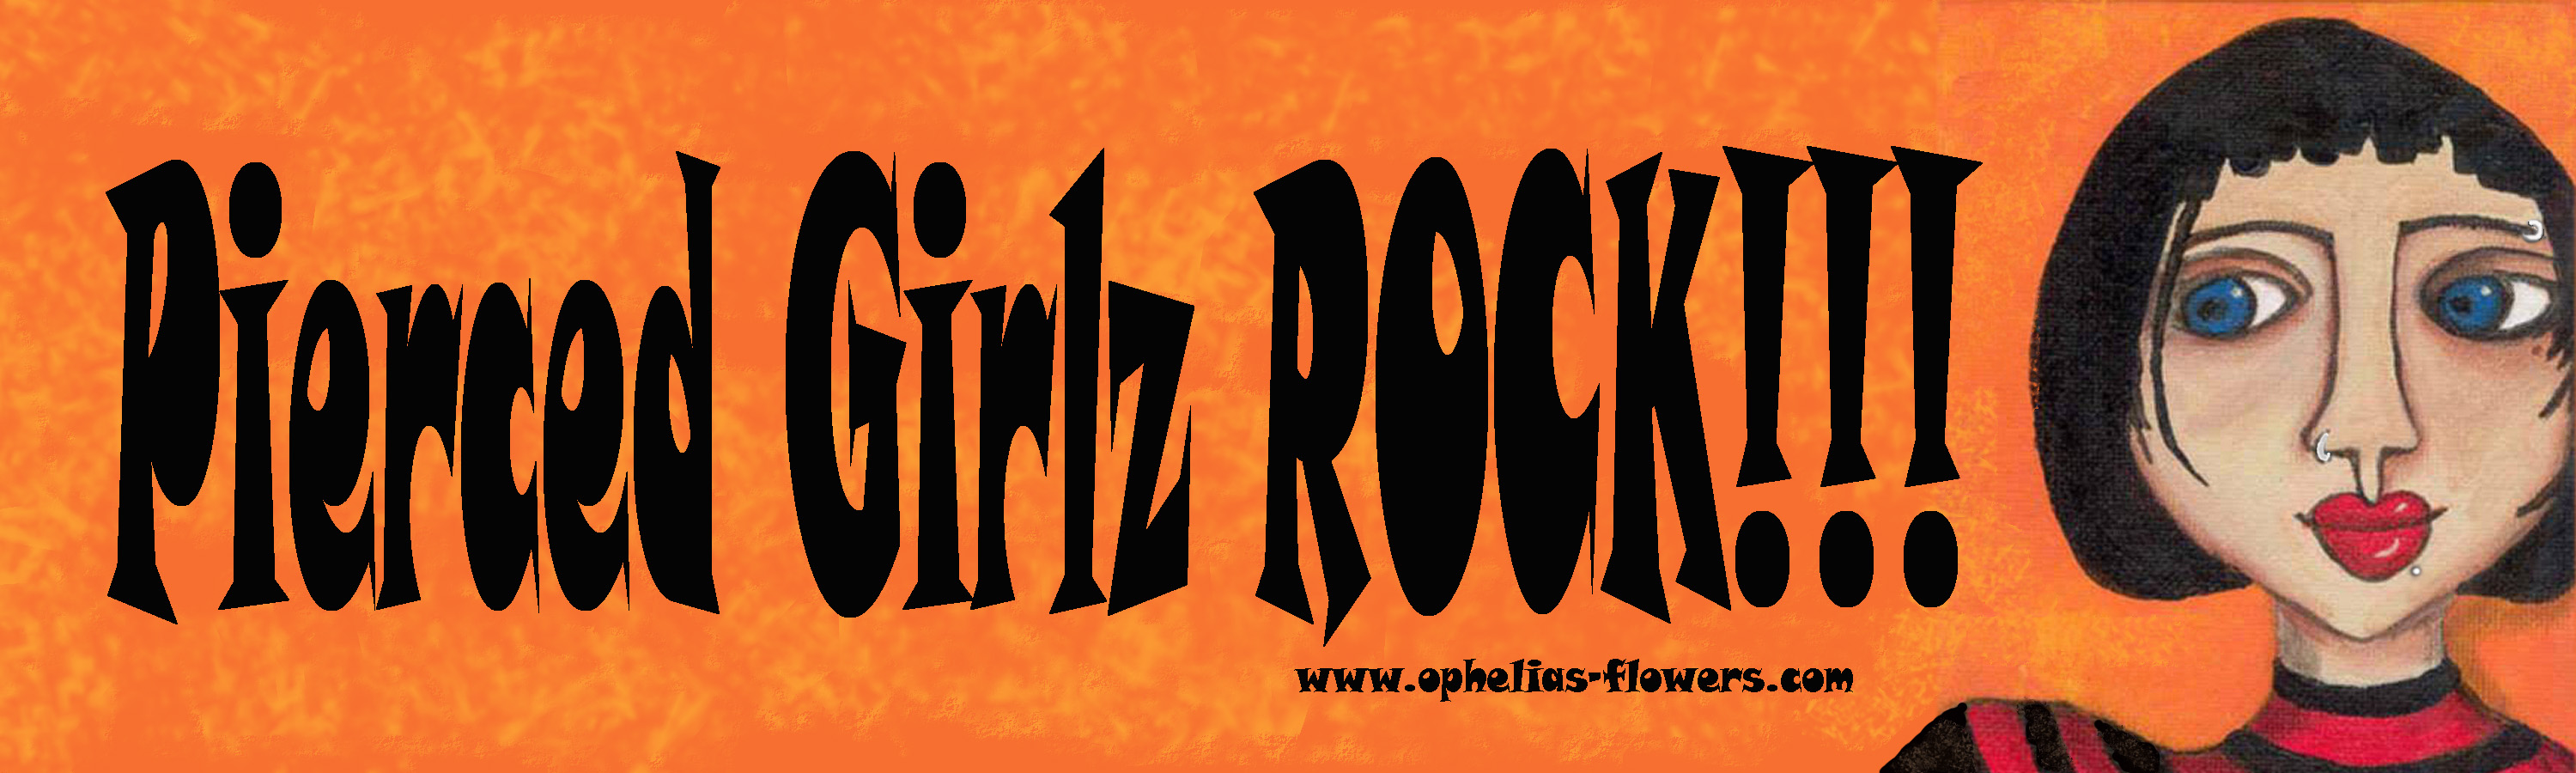 pierced girlz rock sticker